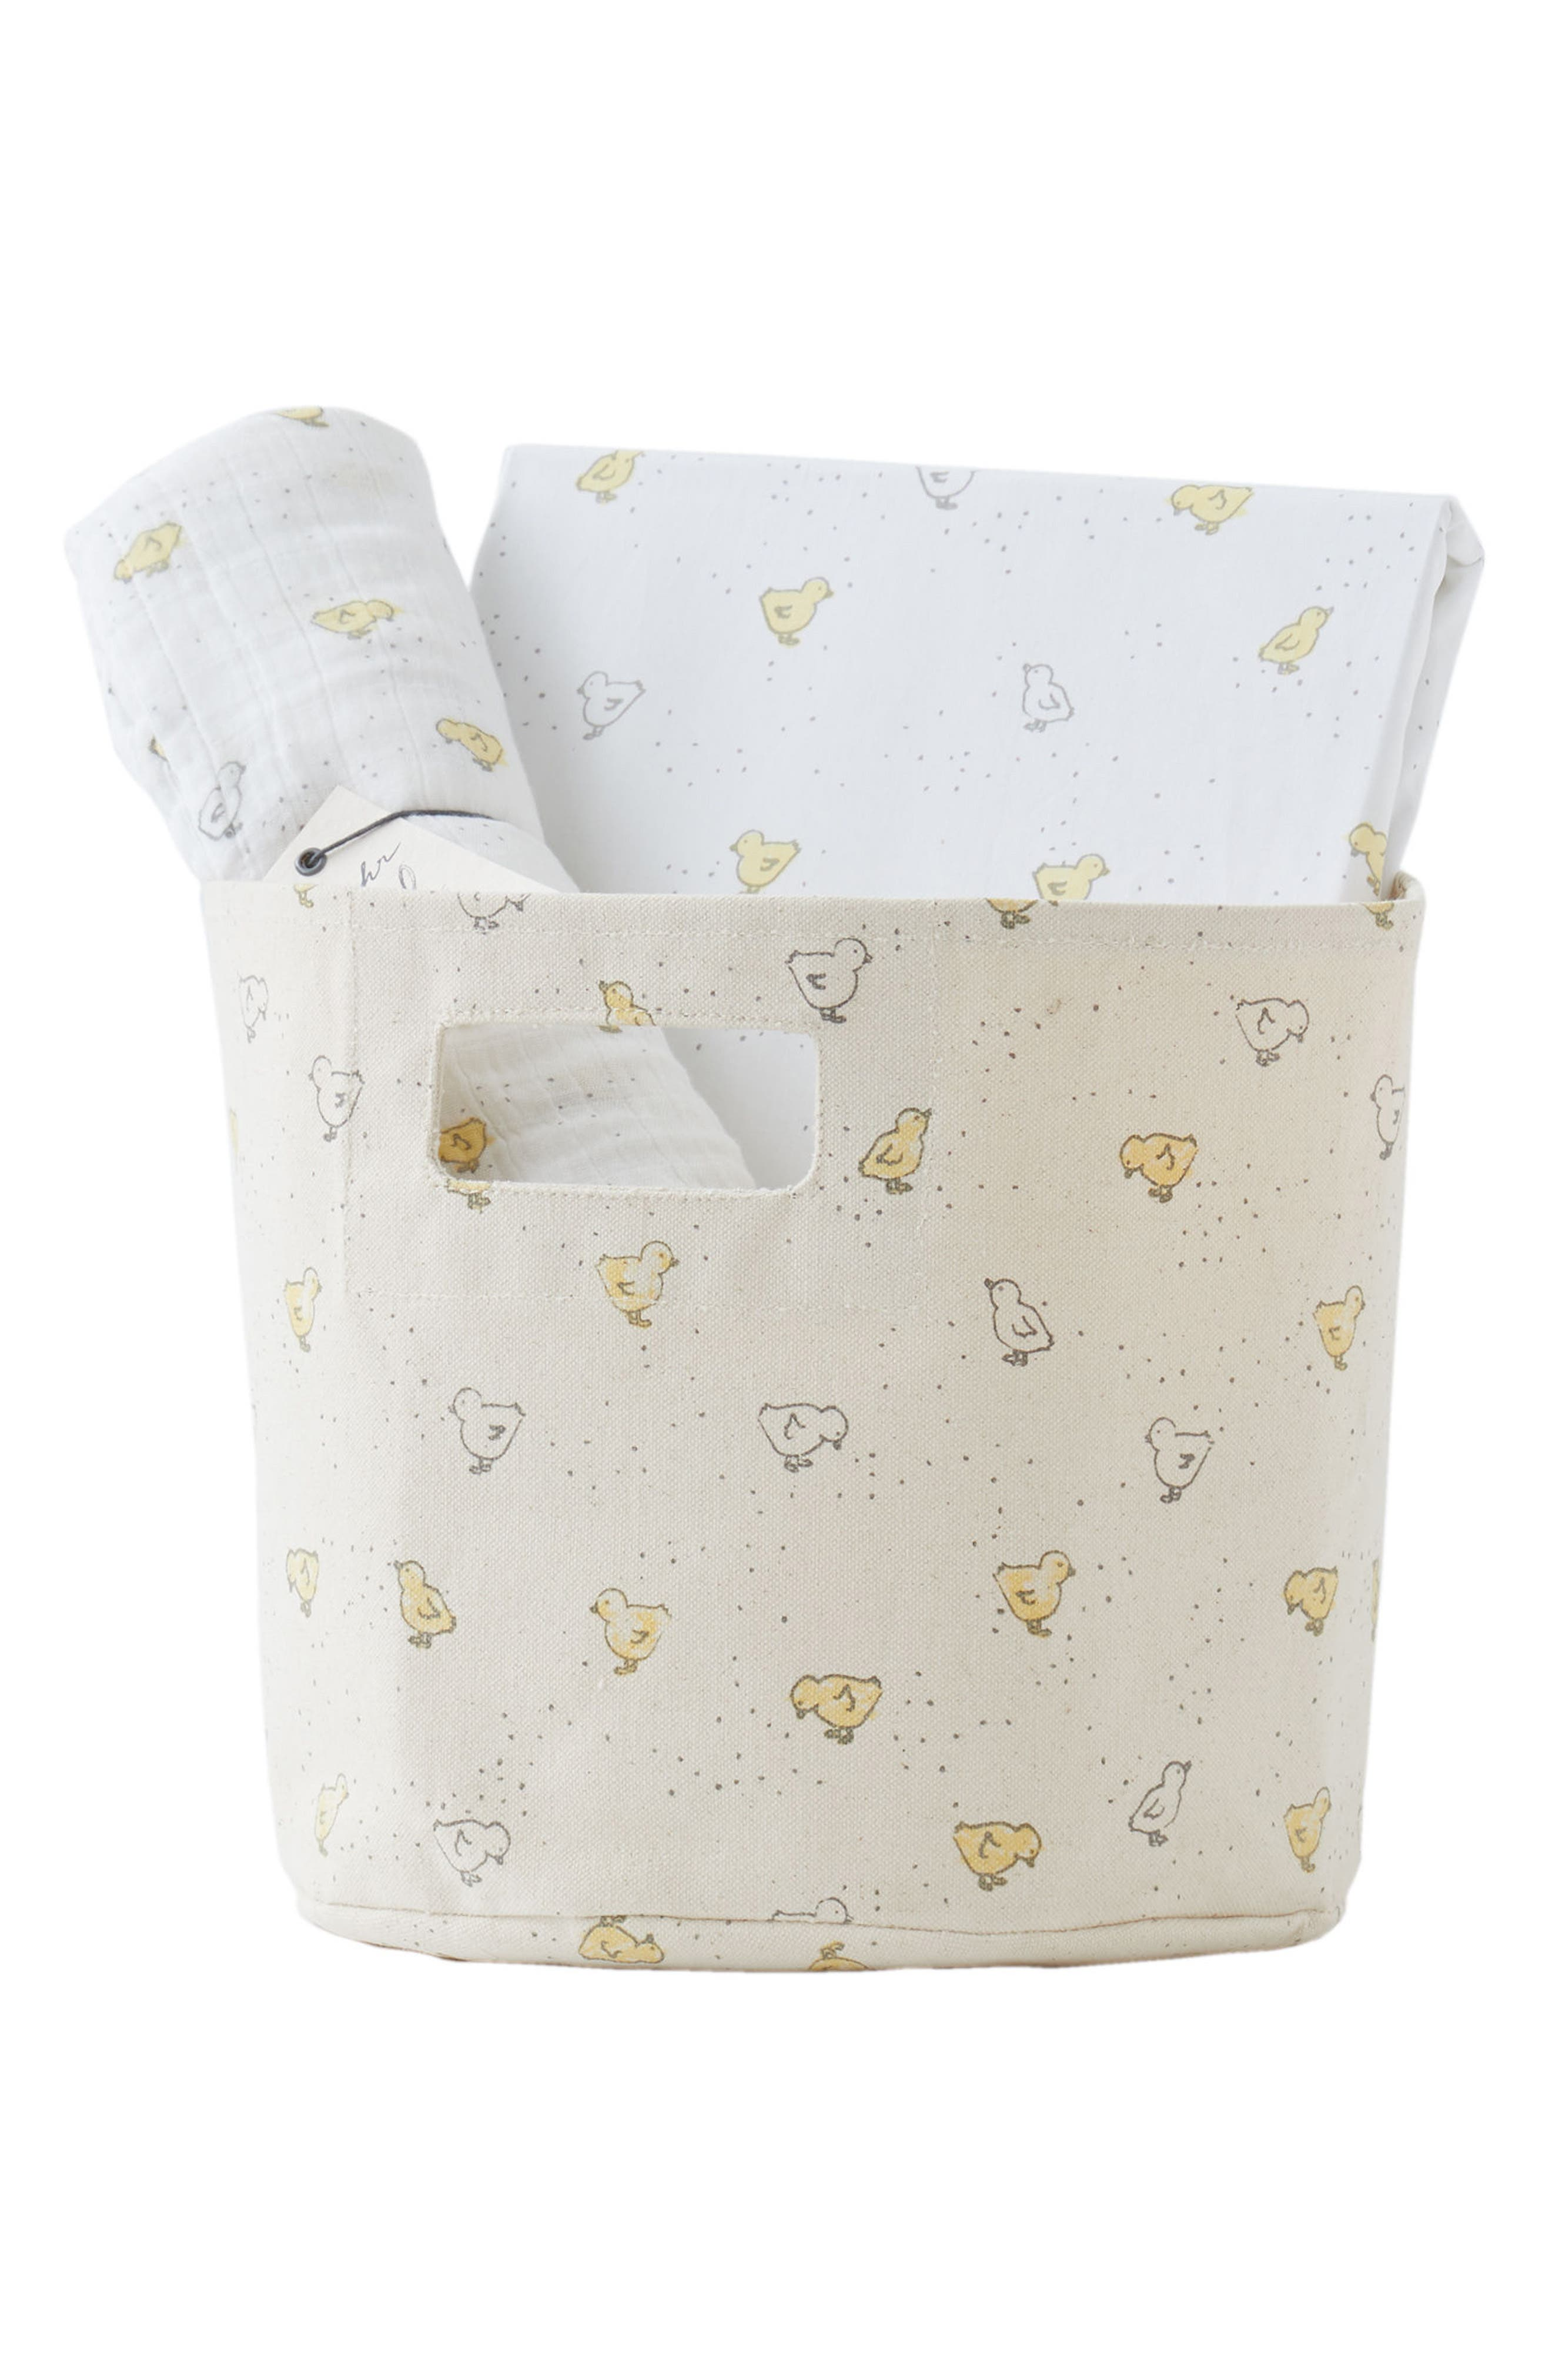 Petit Pehr Chick Crib Sheet, Swaddle & Bin Set